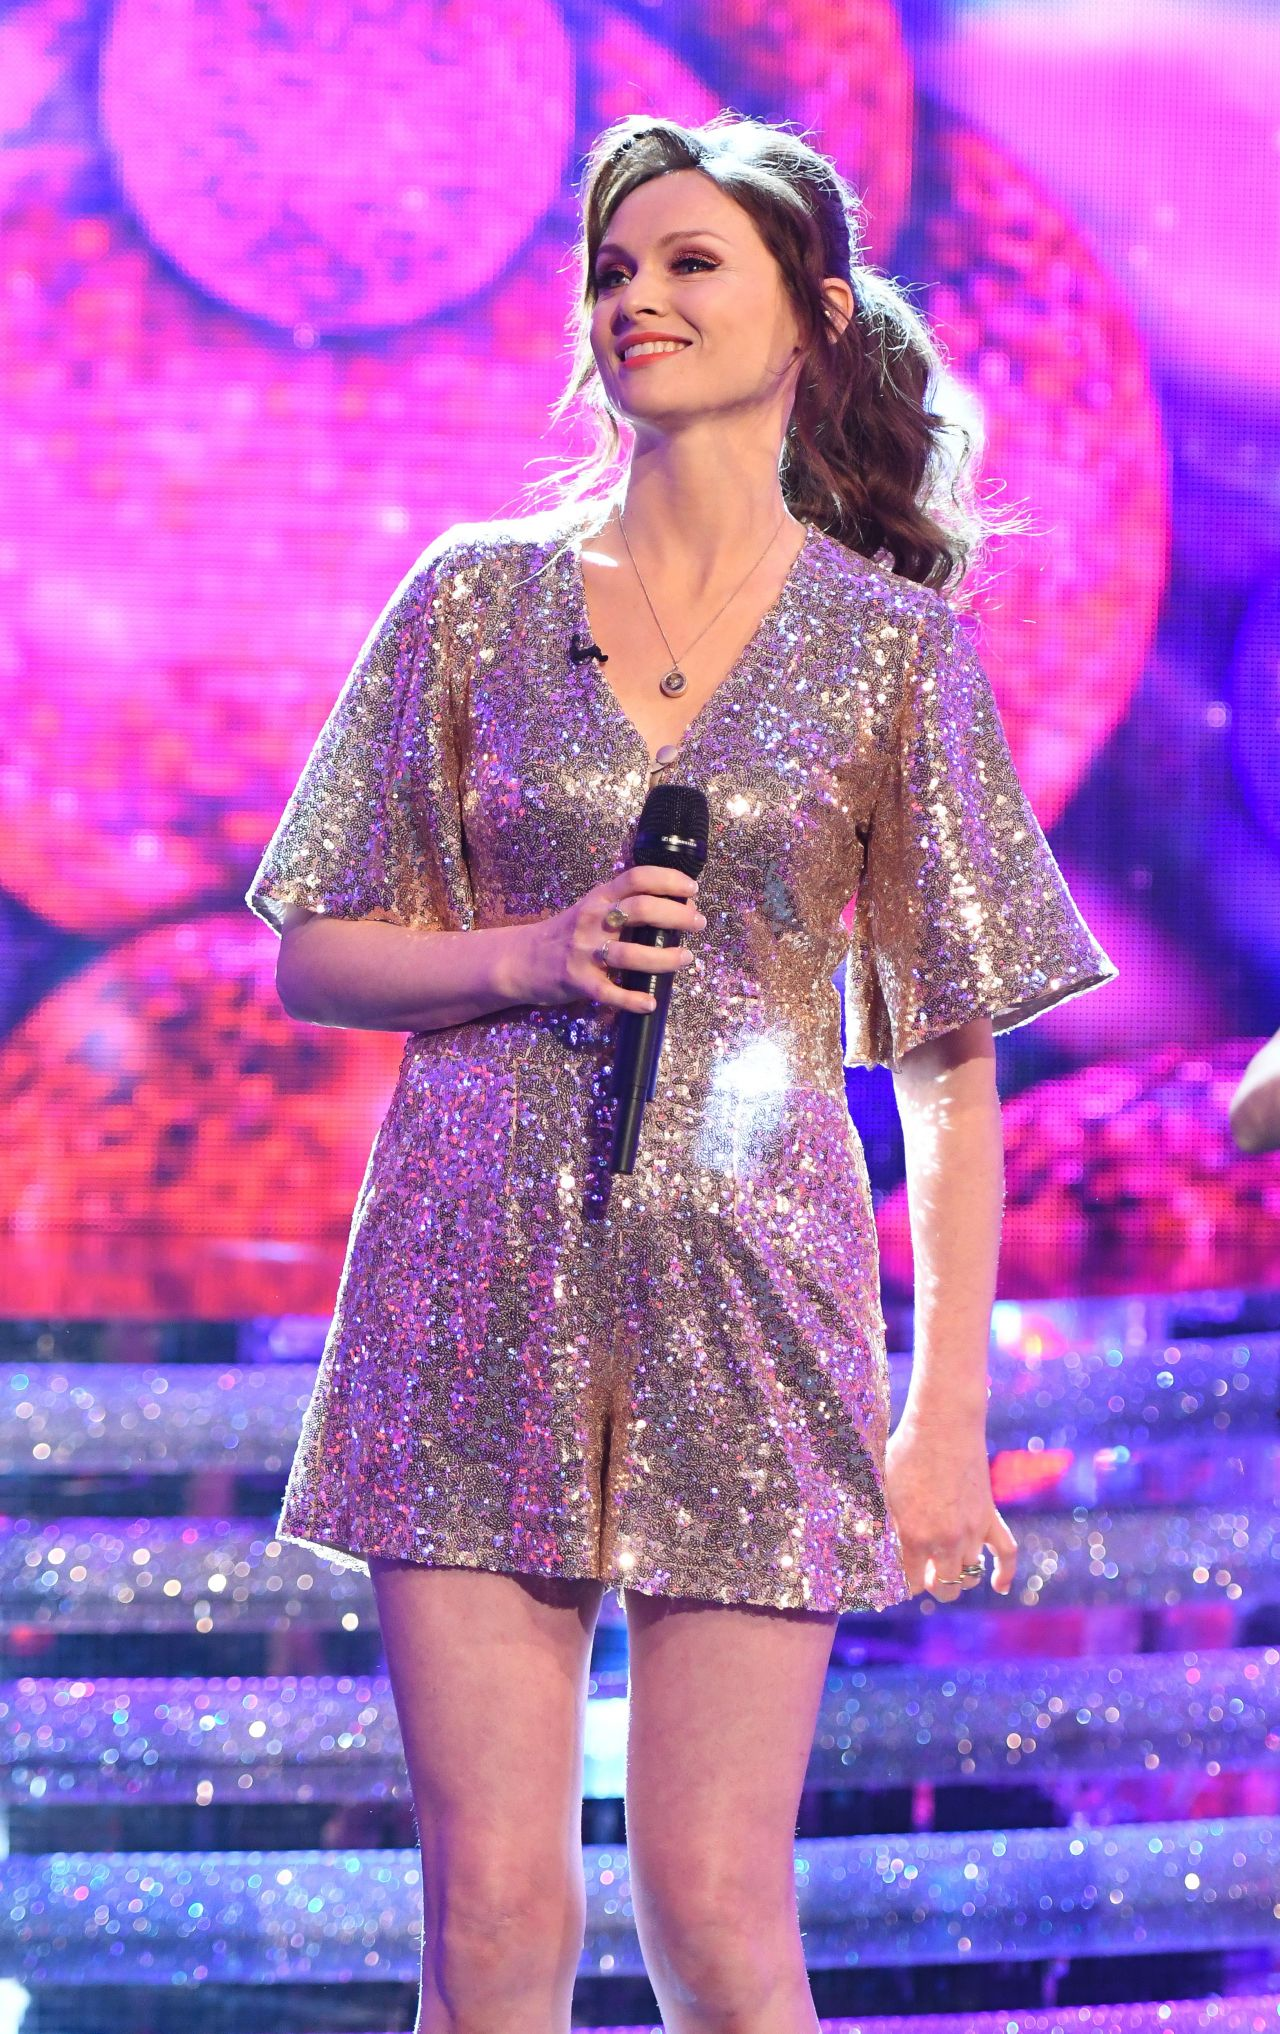 http://celebmafia.com/wp-content/uploads/2018/03/sophie-ellis-bextor-ant-dec-s-saturday-night-takeaway-tv-show-in-london-2.jpg